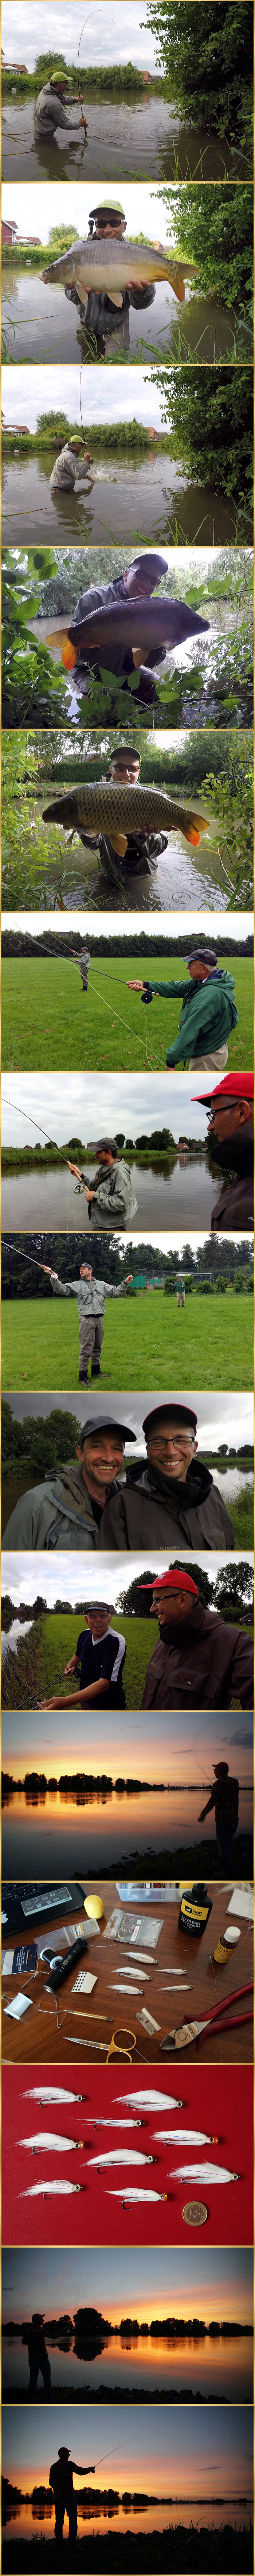 flyfishing school ziesche